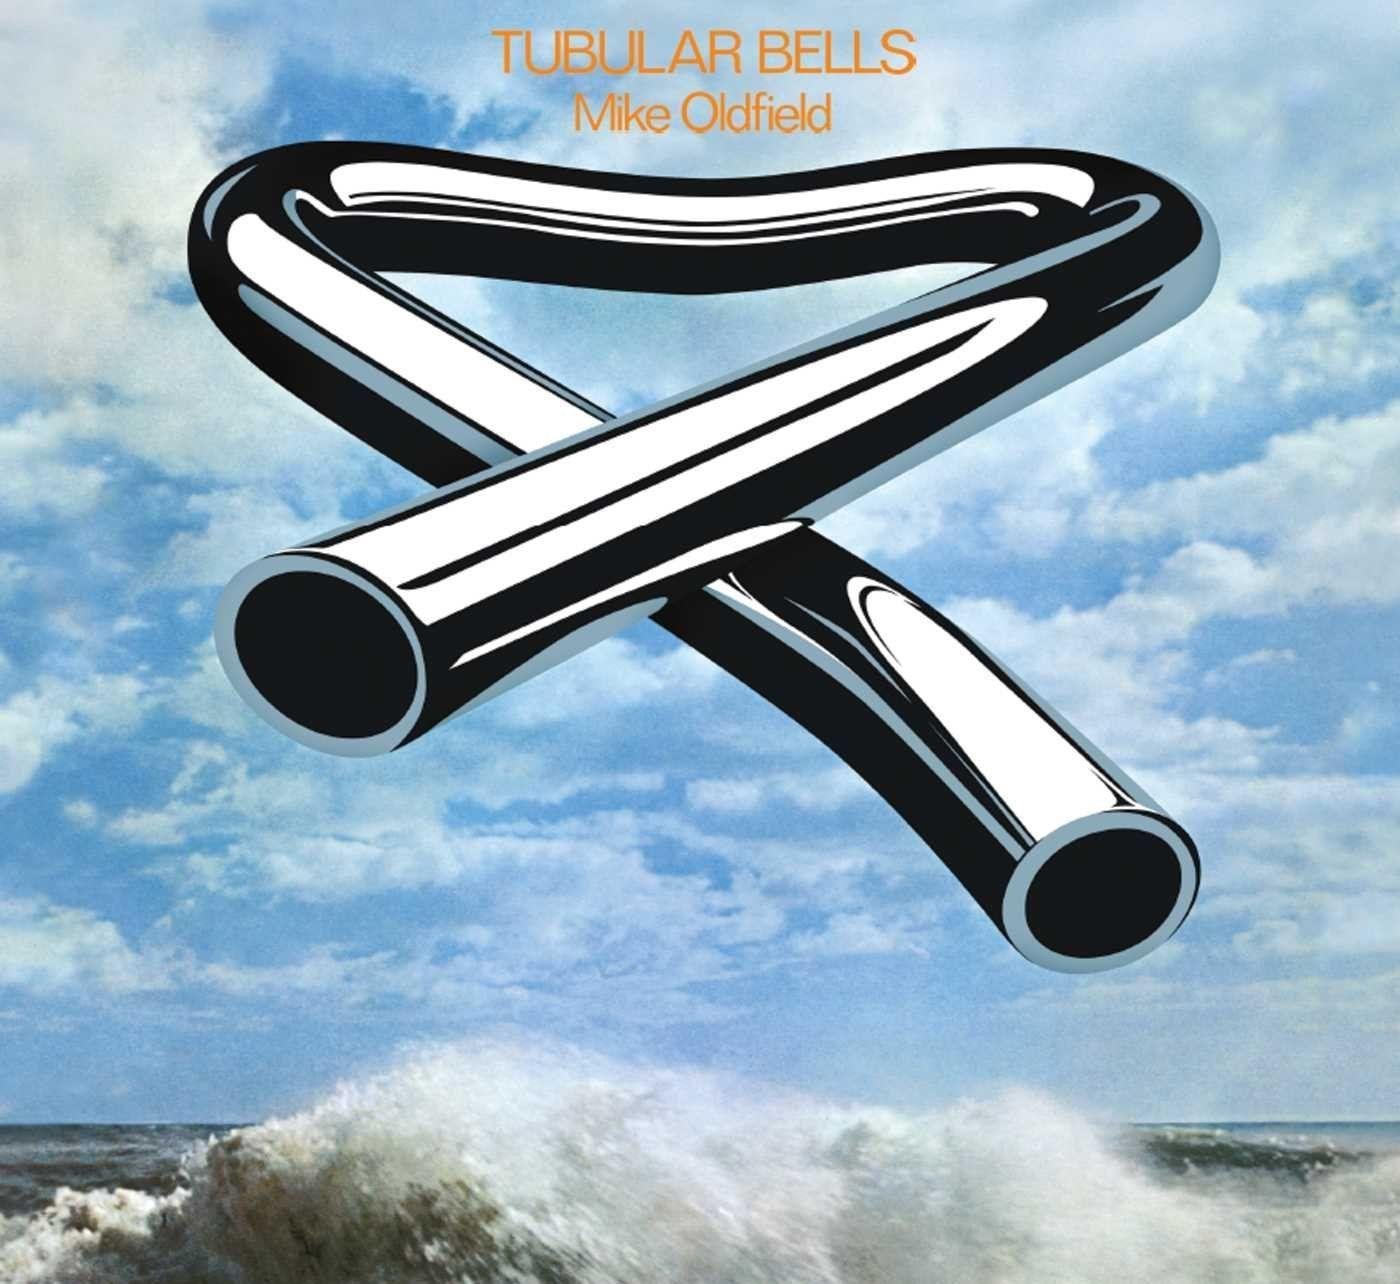 tubolar bells Mike Oldfield